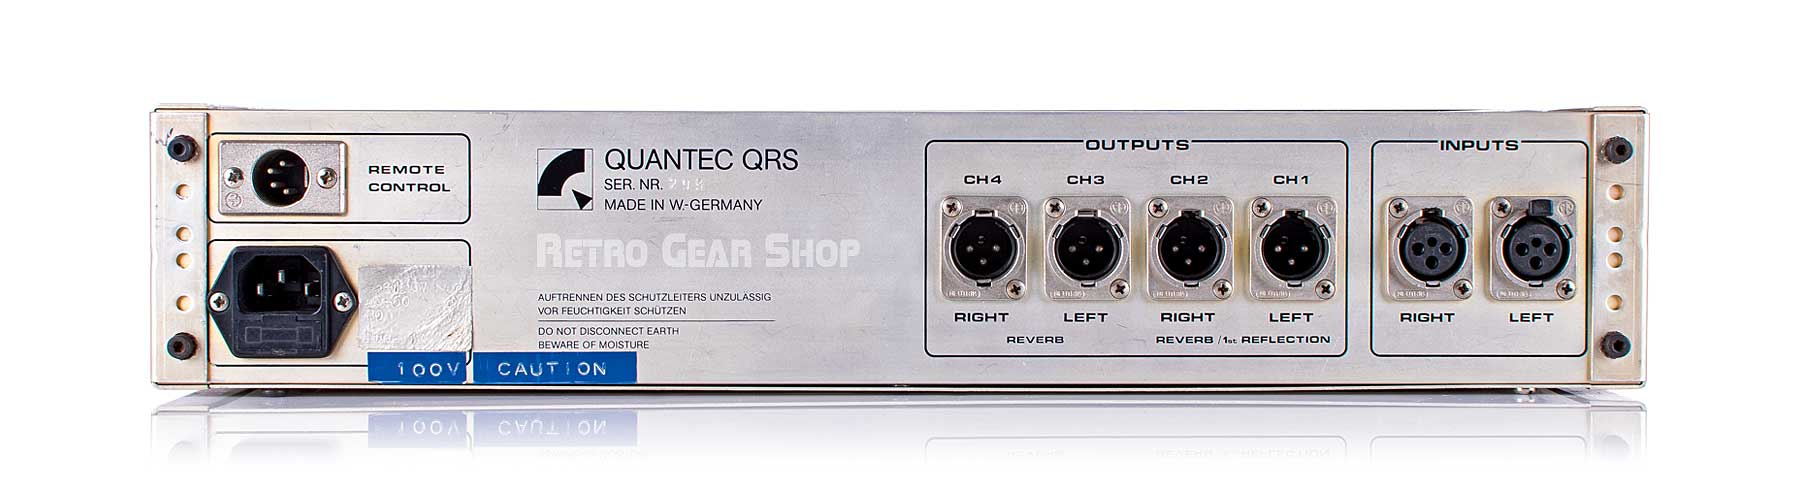 Quantec QRS Serviced Rear